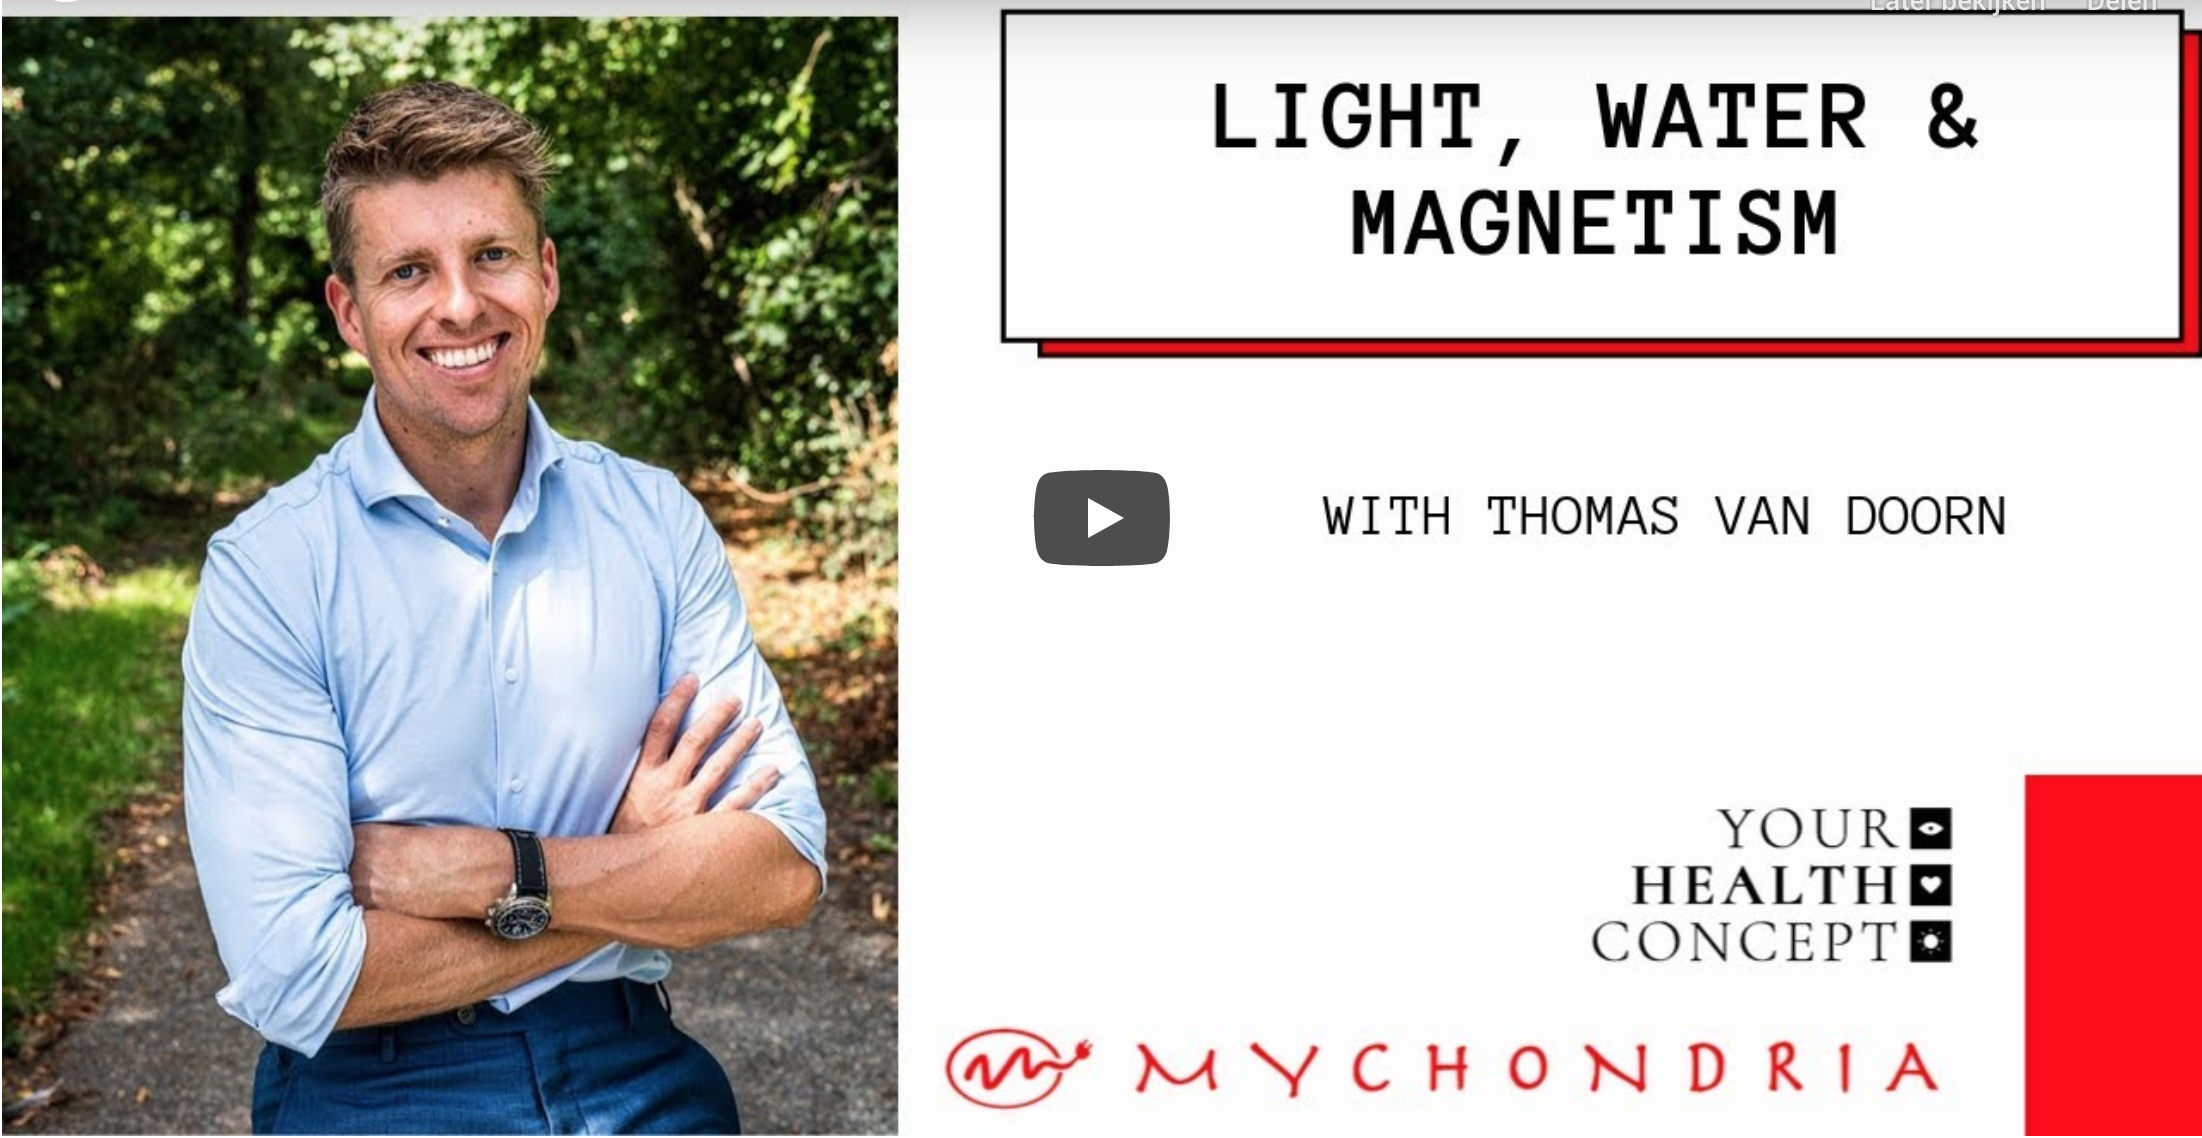 Interview Thomas van Doorn light, water, magnetism by Mychondria